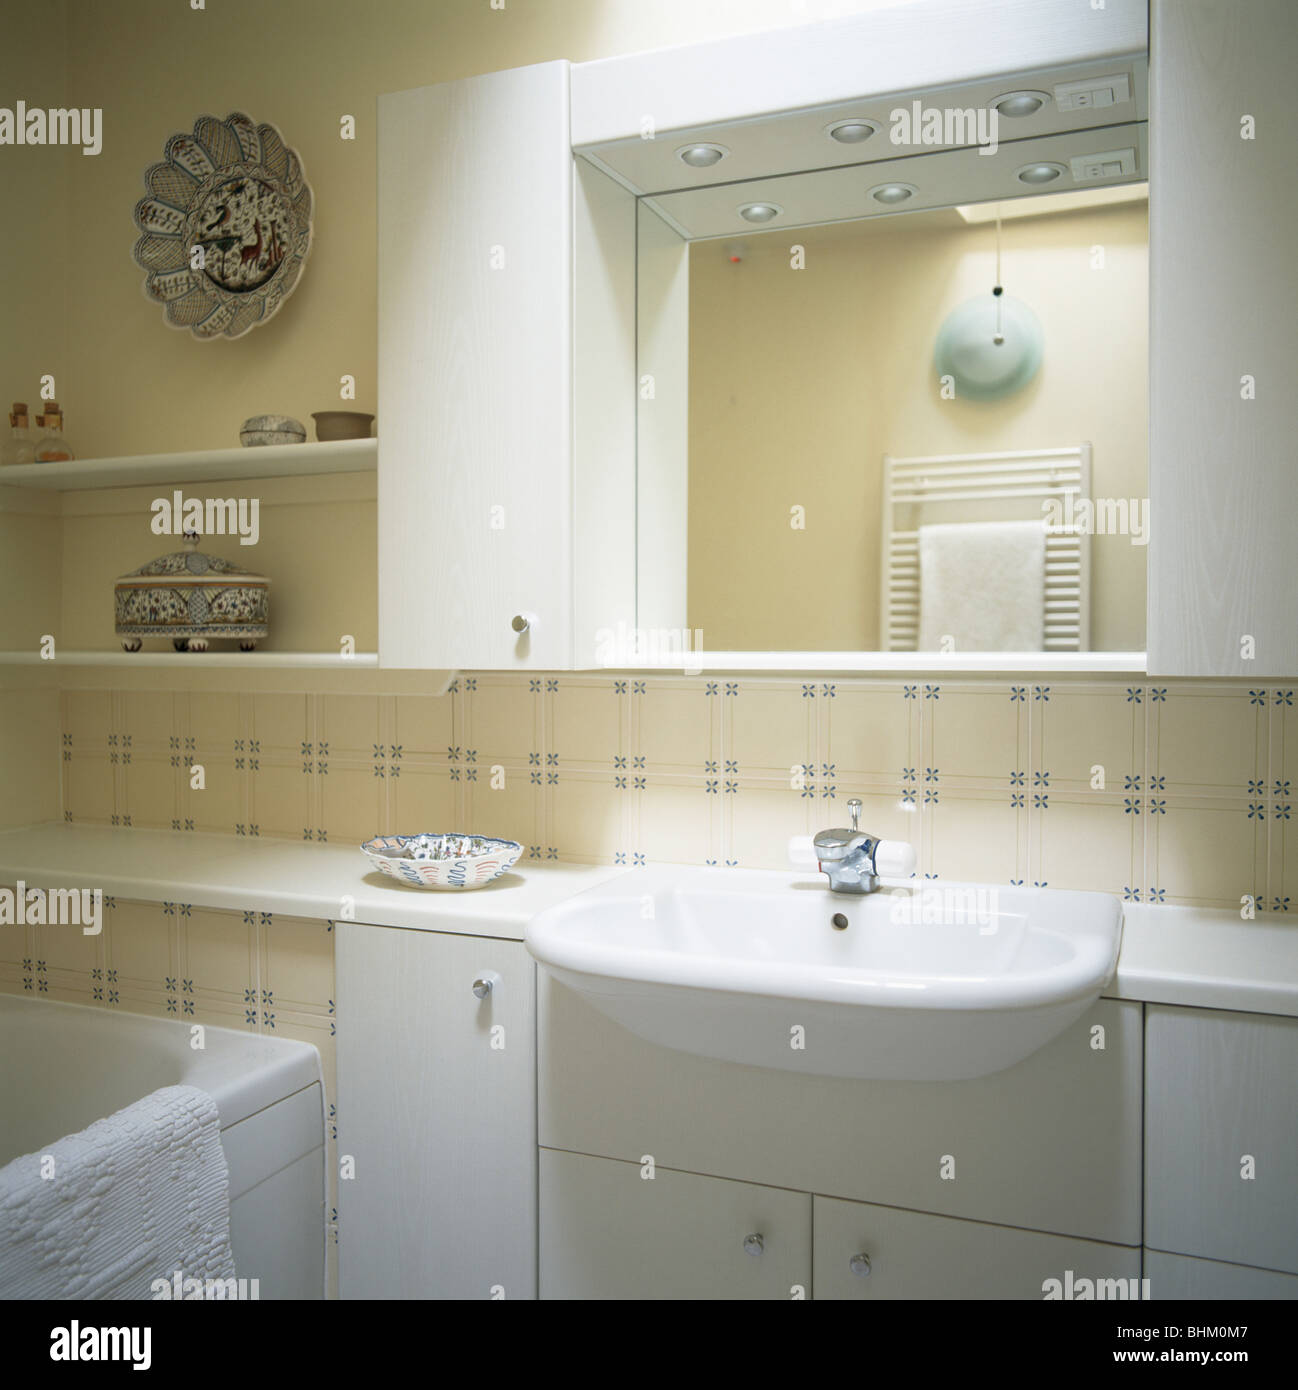 Mirror above basin in fitted vanity unit in modern bathroom with patterned  cream Fired Earth tiles. Mirror above basin in fitted vanity unit in modern bathroom with